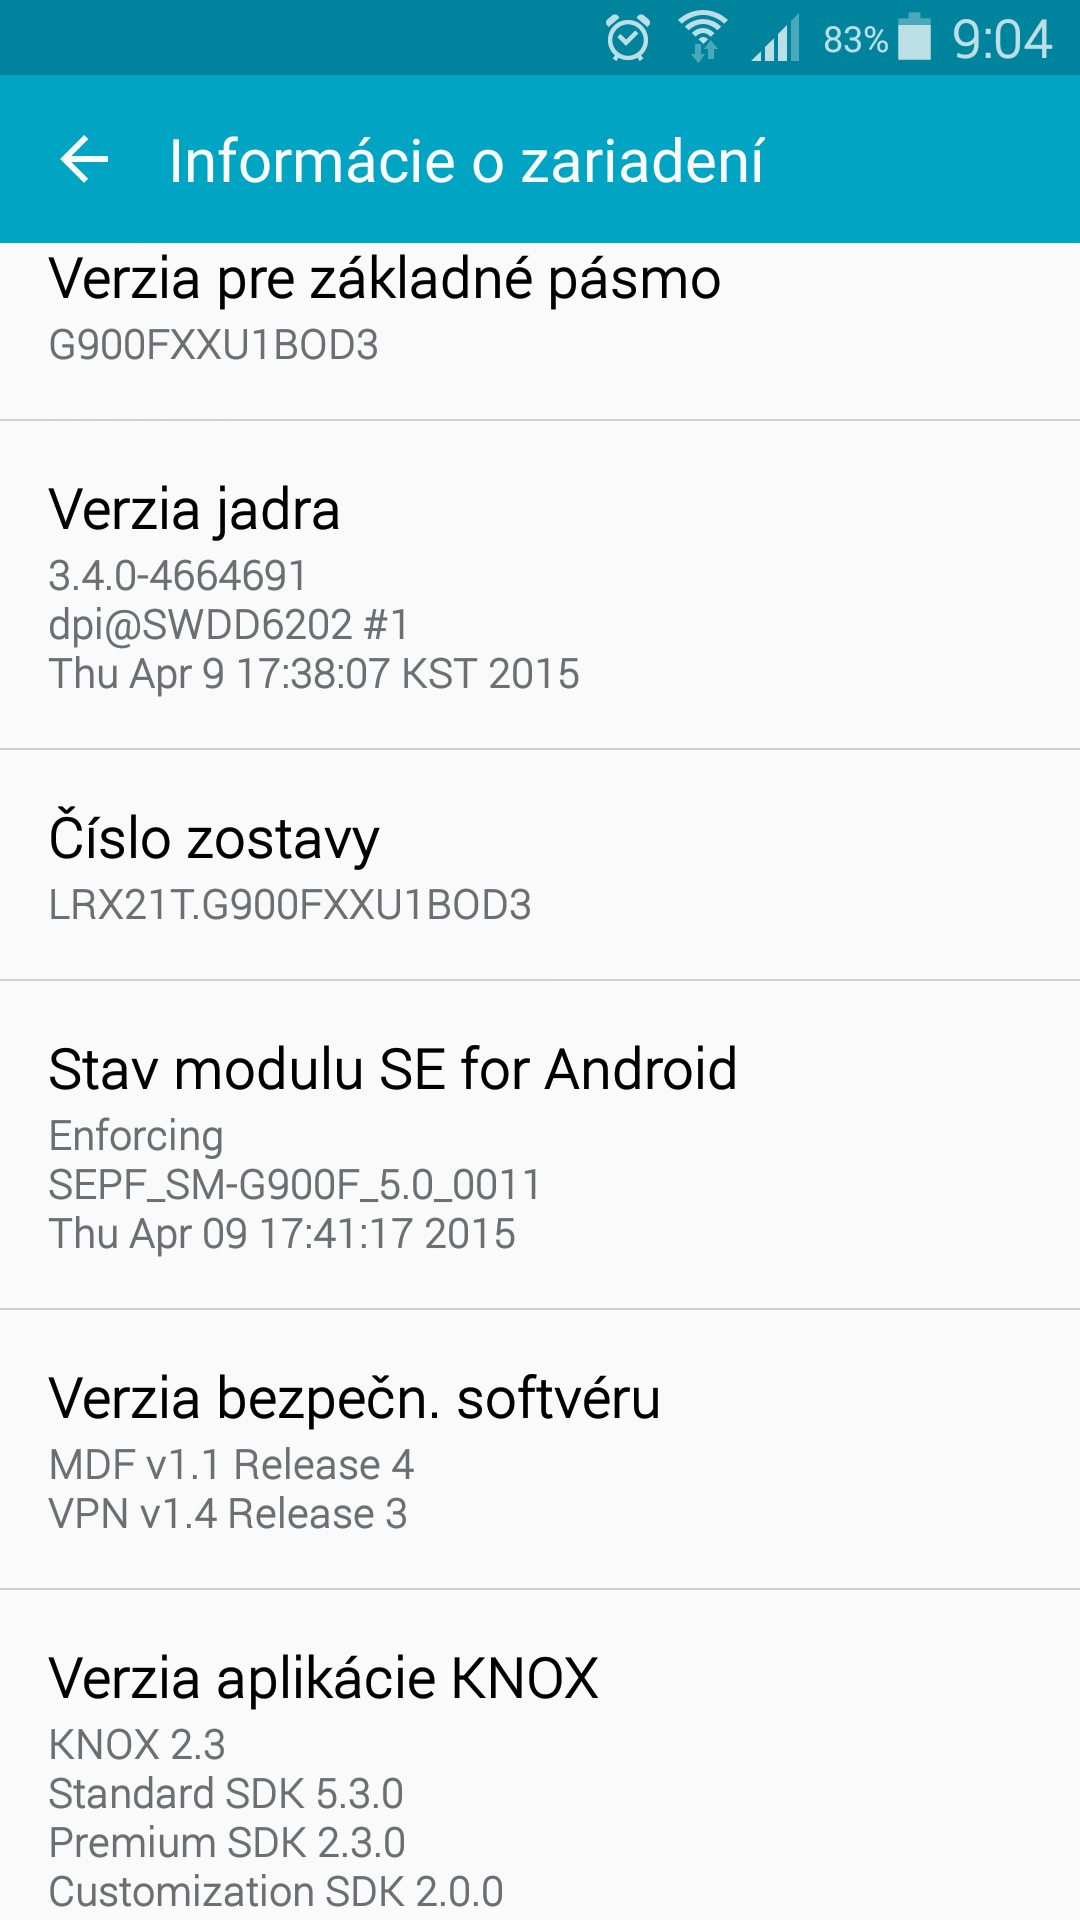 Screenshot_2015-06-23-09-04-14.png